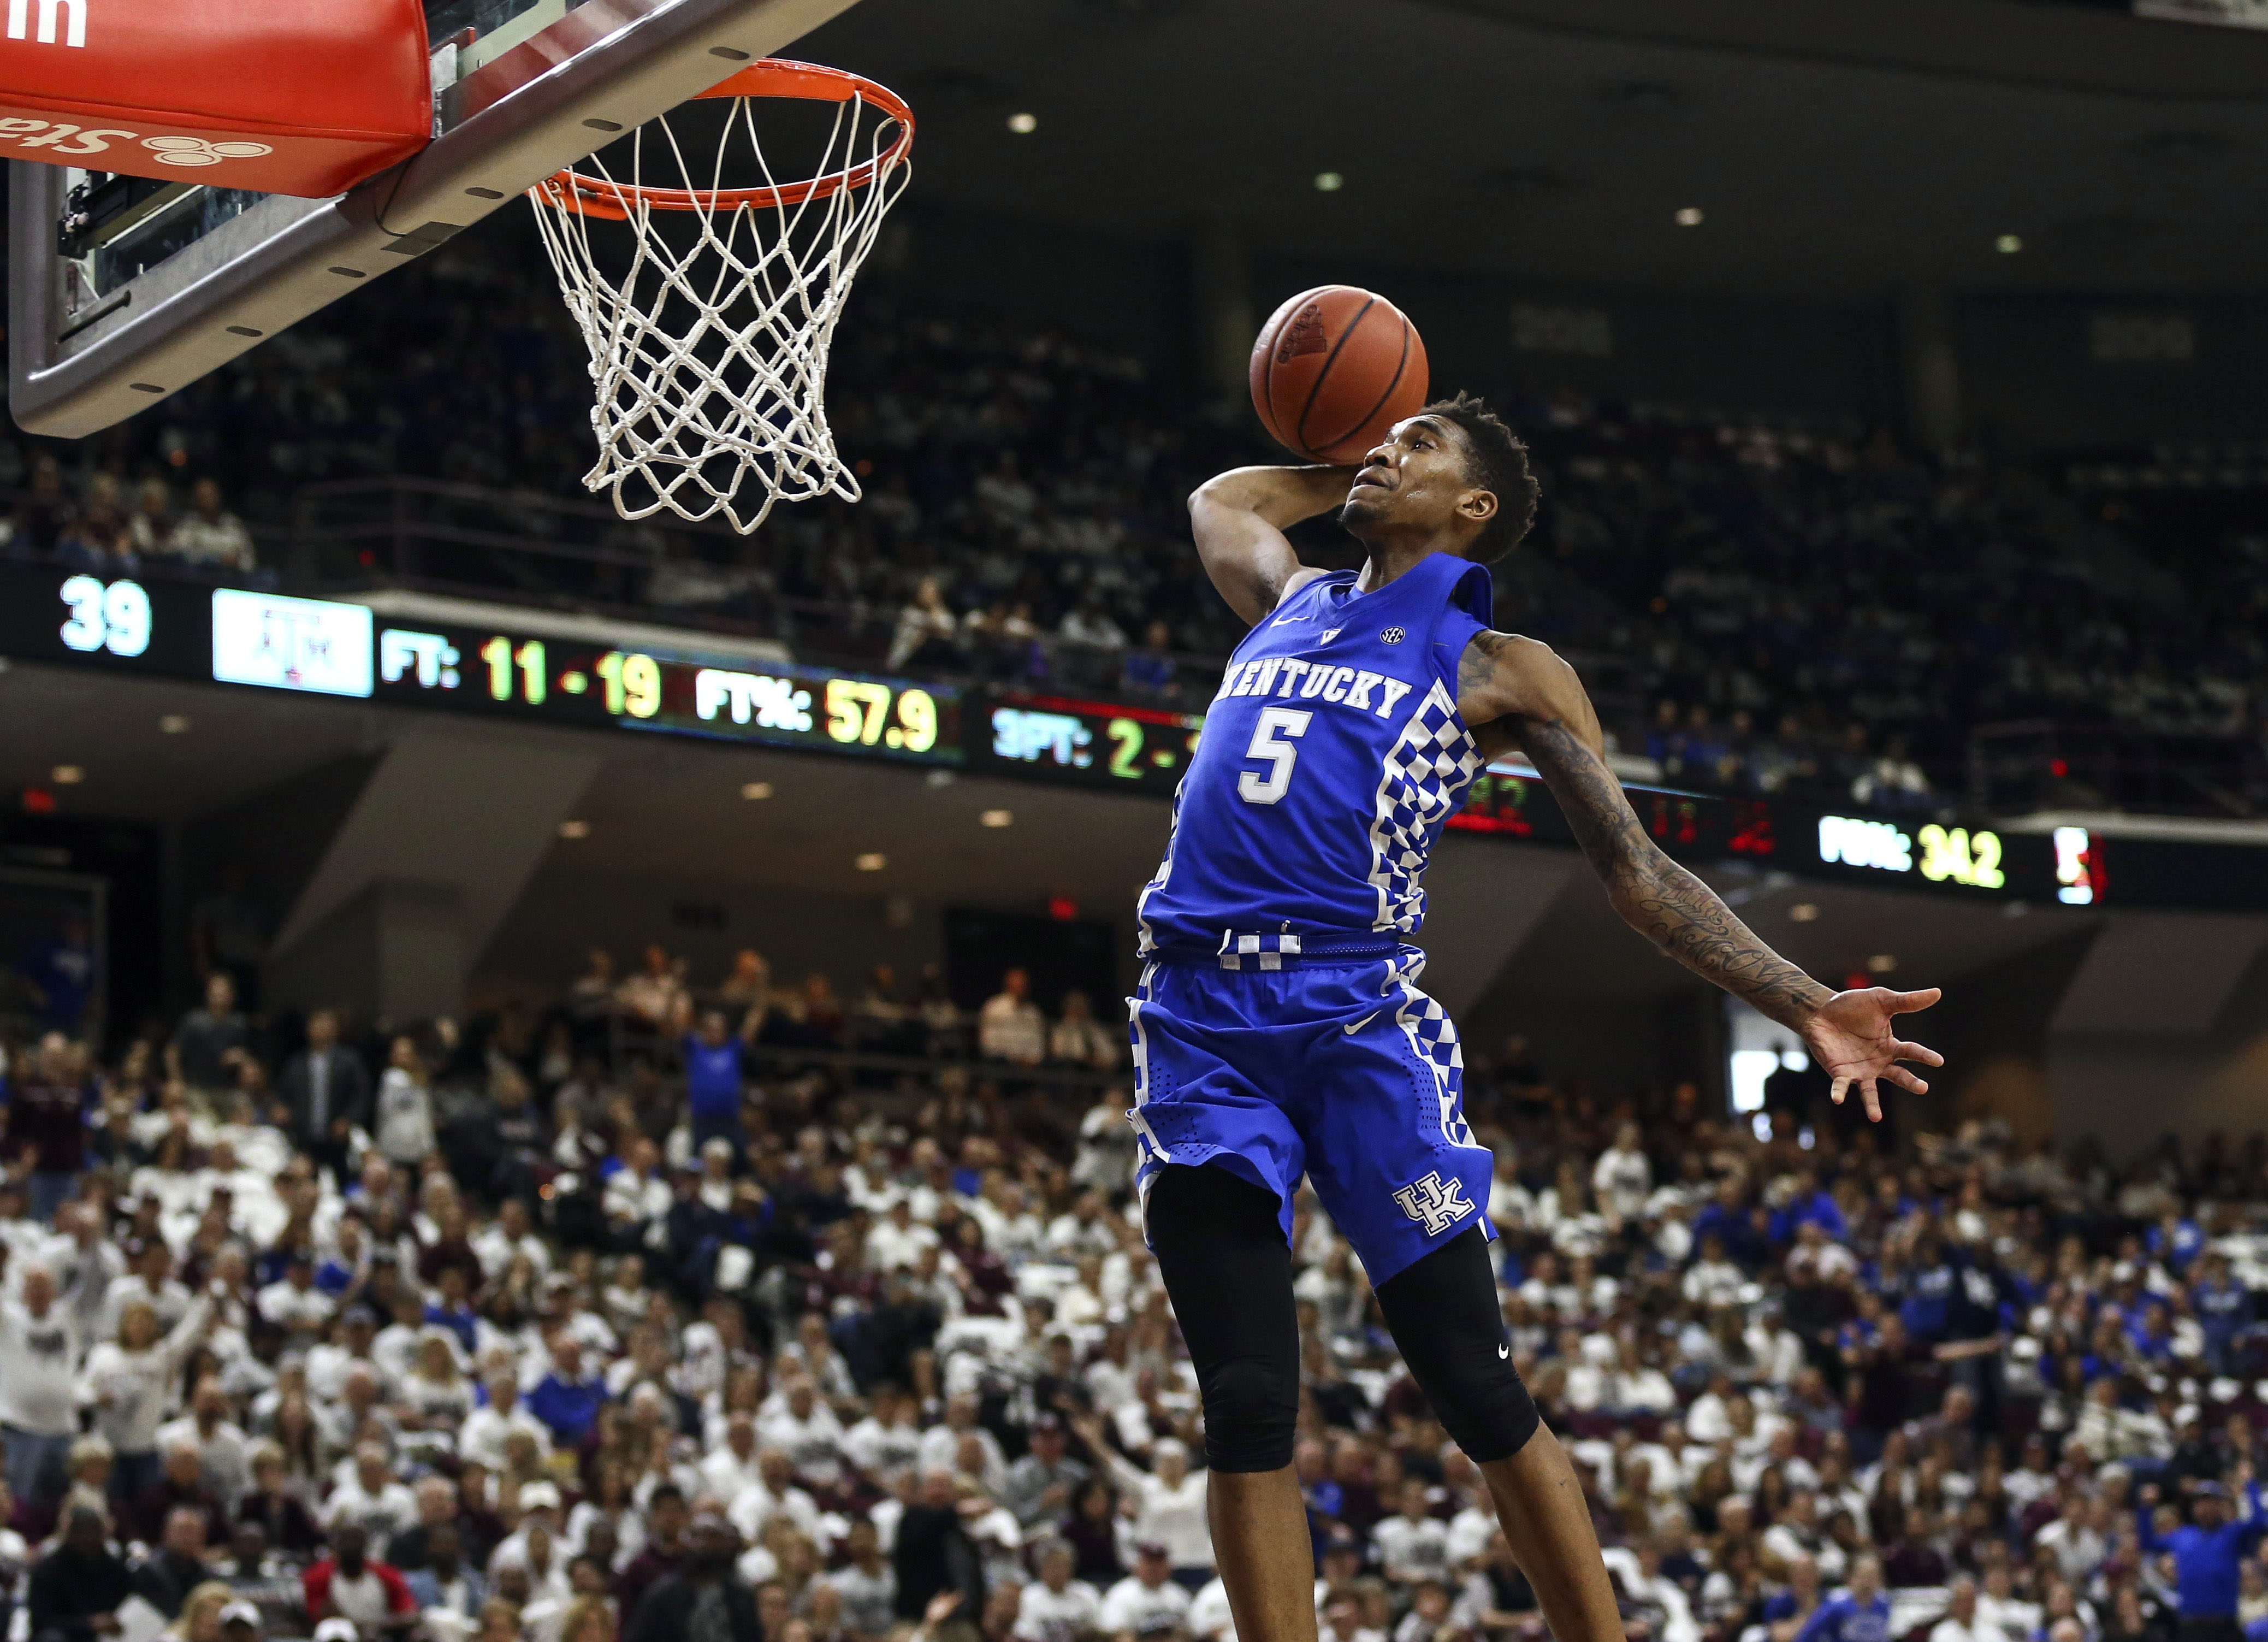 Uk Basketball: The Top 50 March Madness Players You Should Know